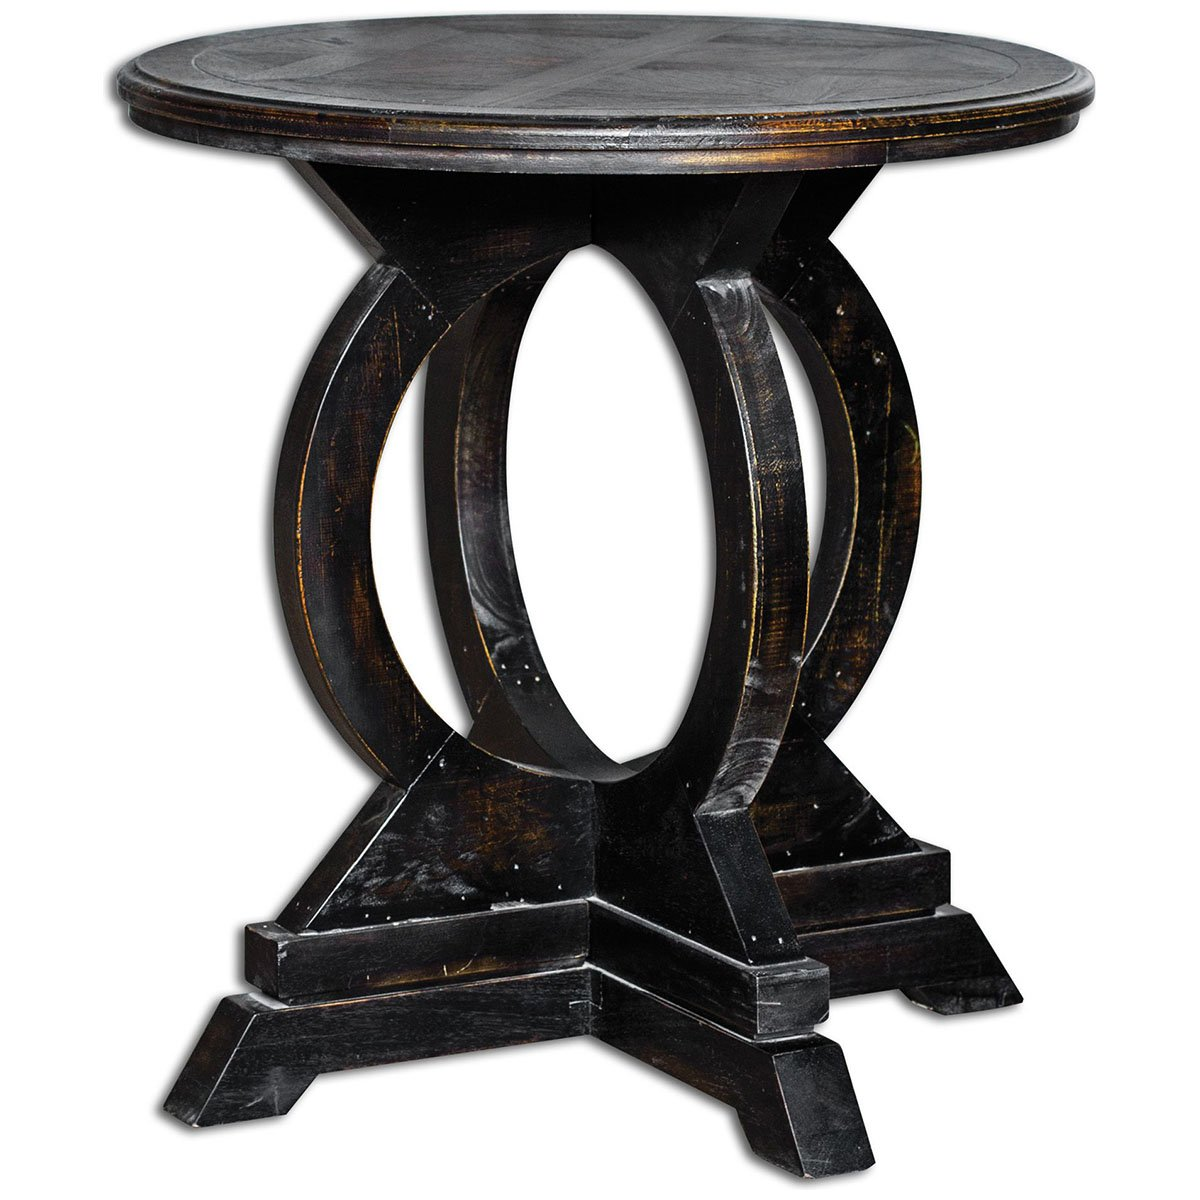 uttermost maiva accent table black kitchen dining round wood thai furniture ethan allen cherry bedroom threshold side outdoor wall light fixtures garden desk chairs pier one